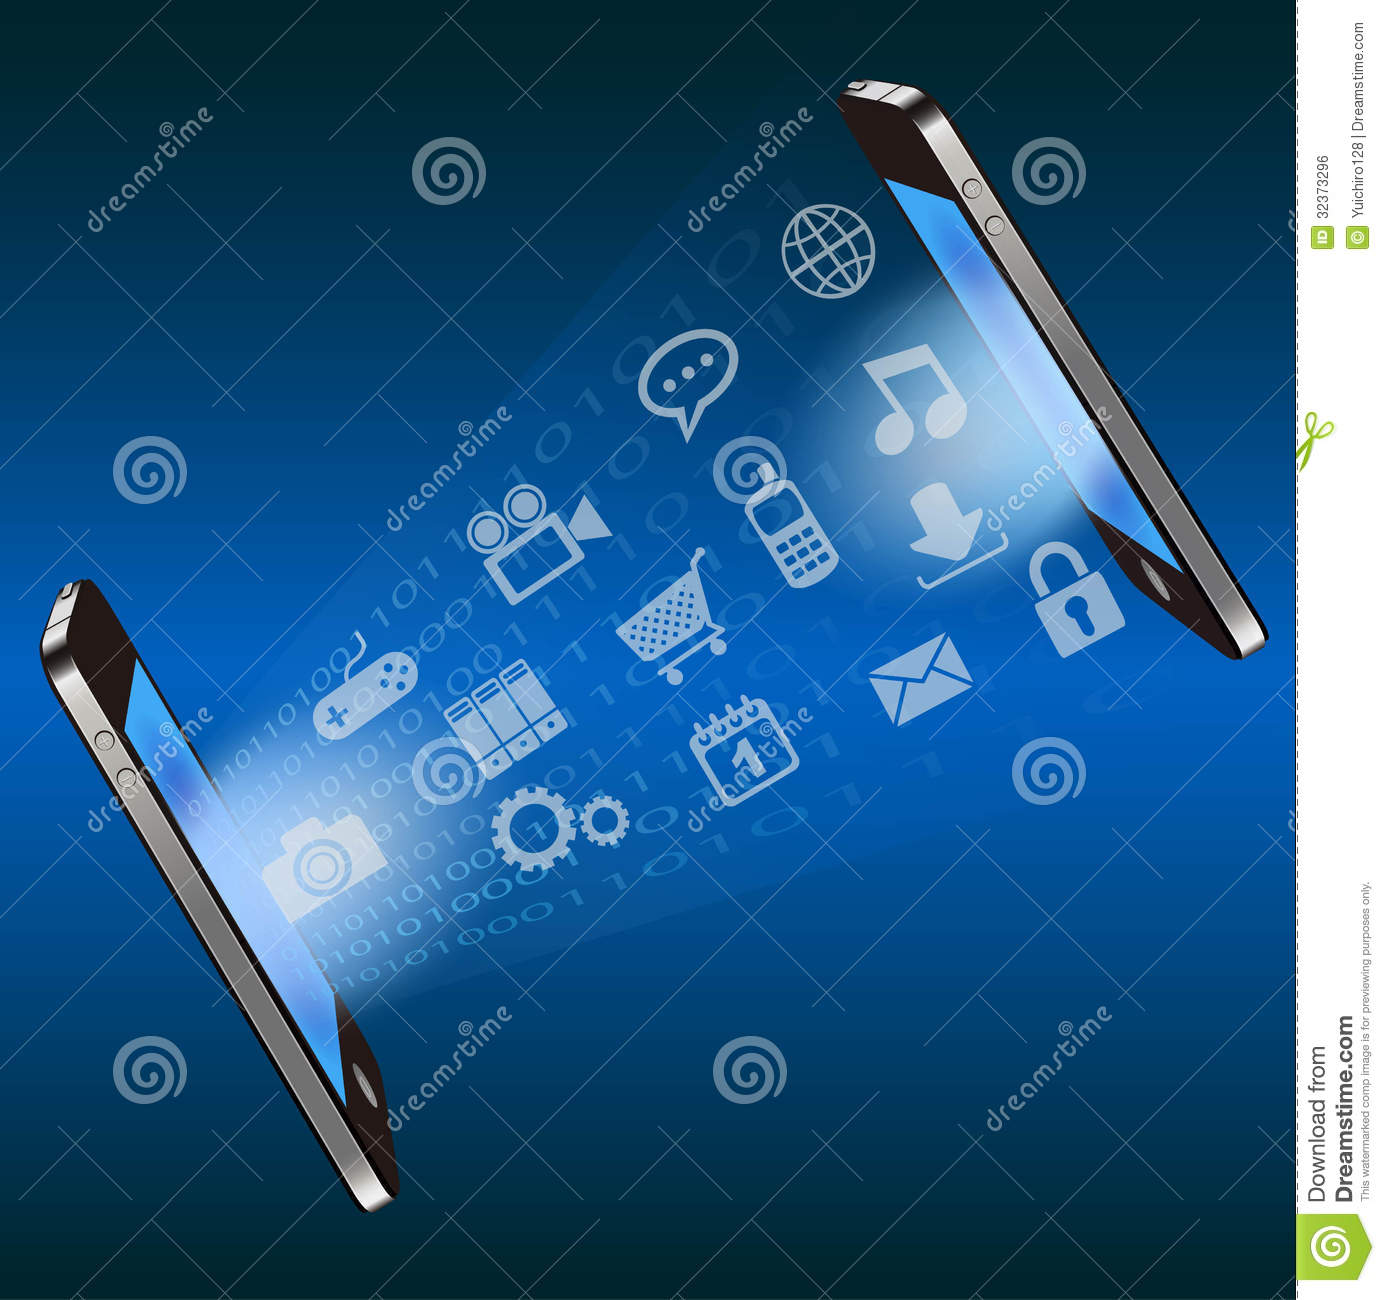 Smart Phone Communication Technology Background Royalty ...